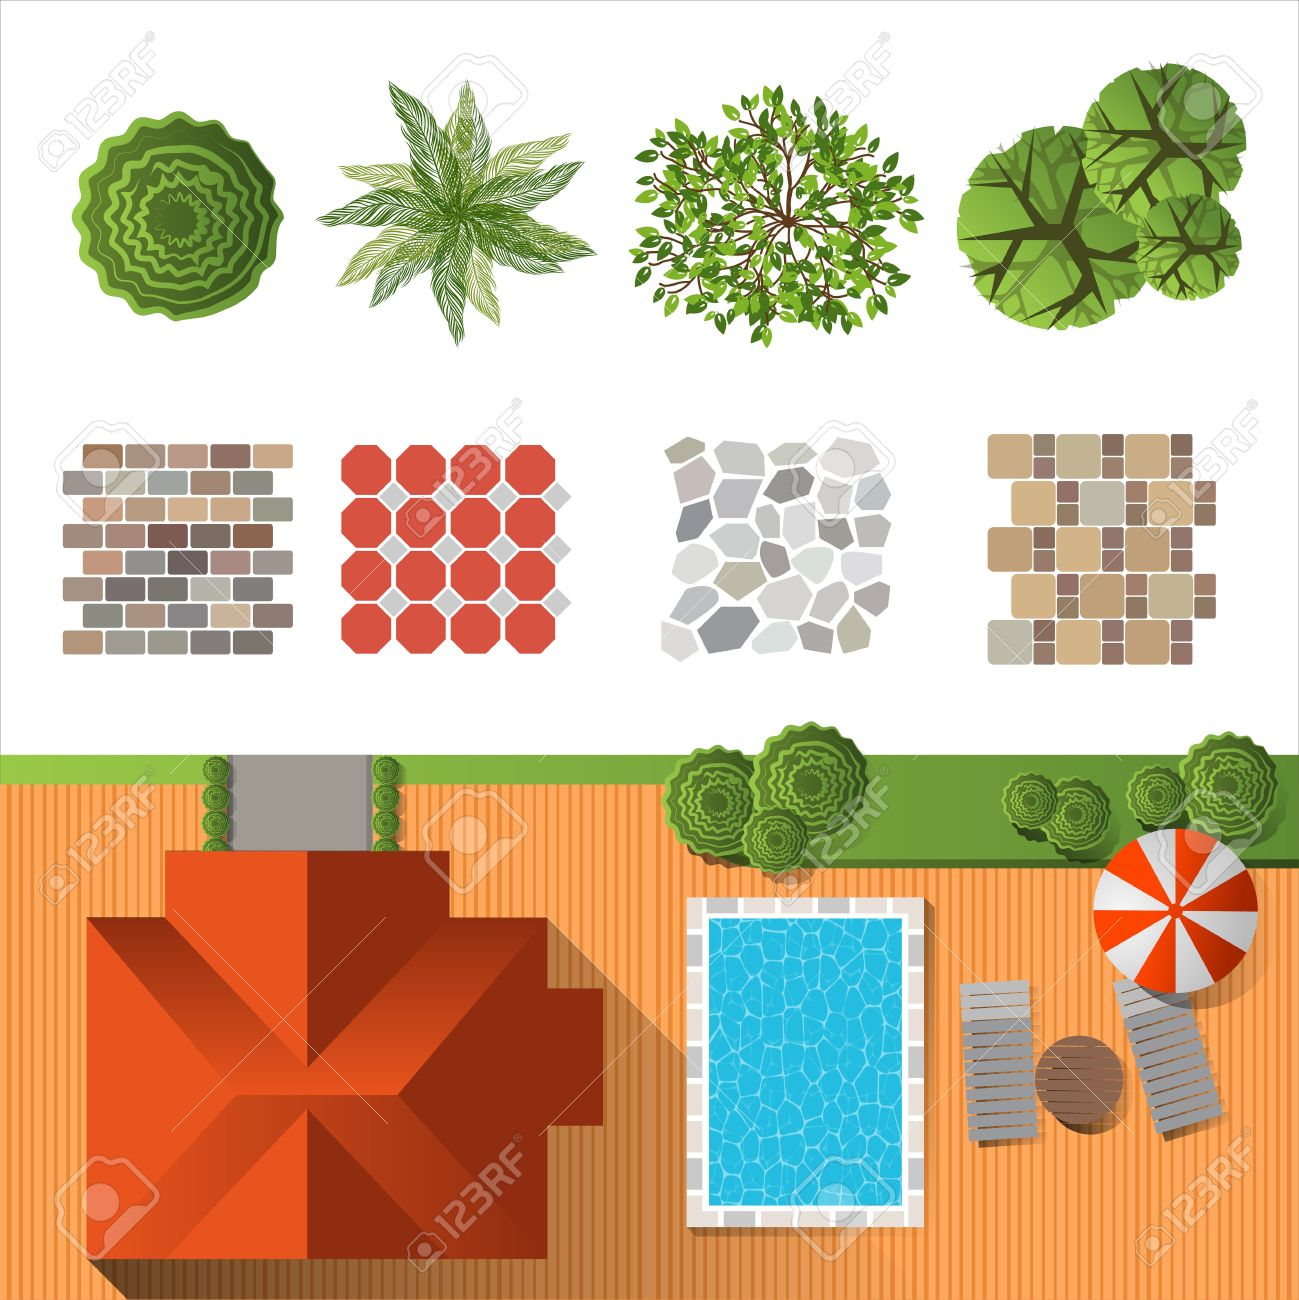 Plant top view vector in group download free vector art stock - Plants Top View Detailed Landscape Design Elements Make Your Own Plan Top View